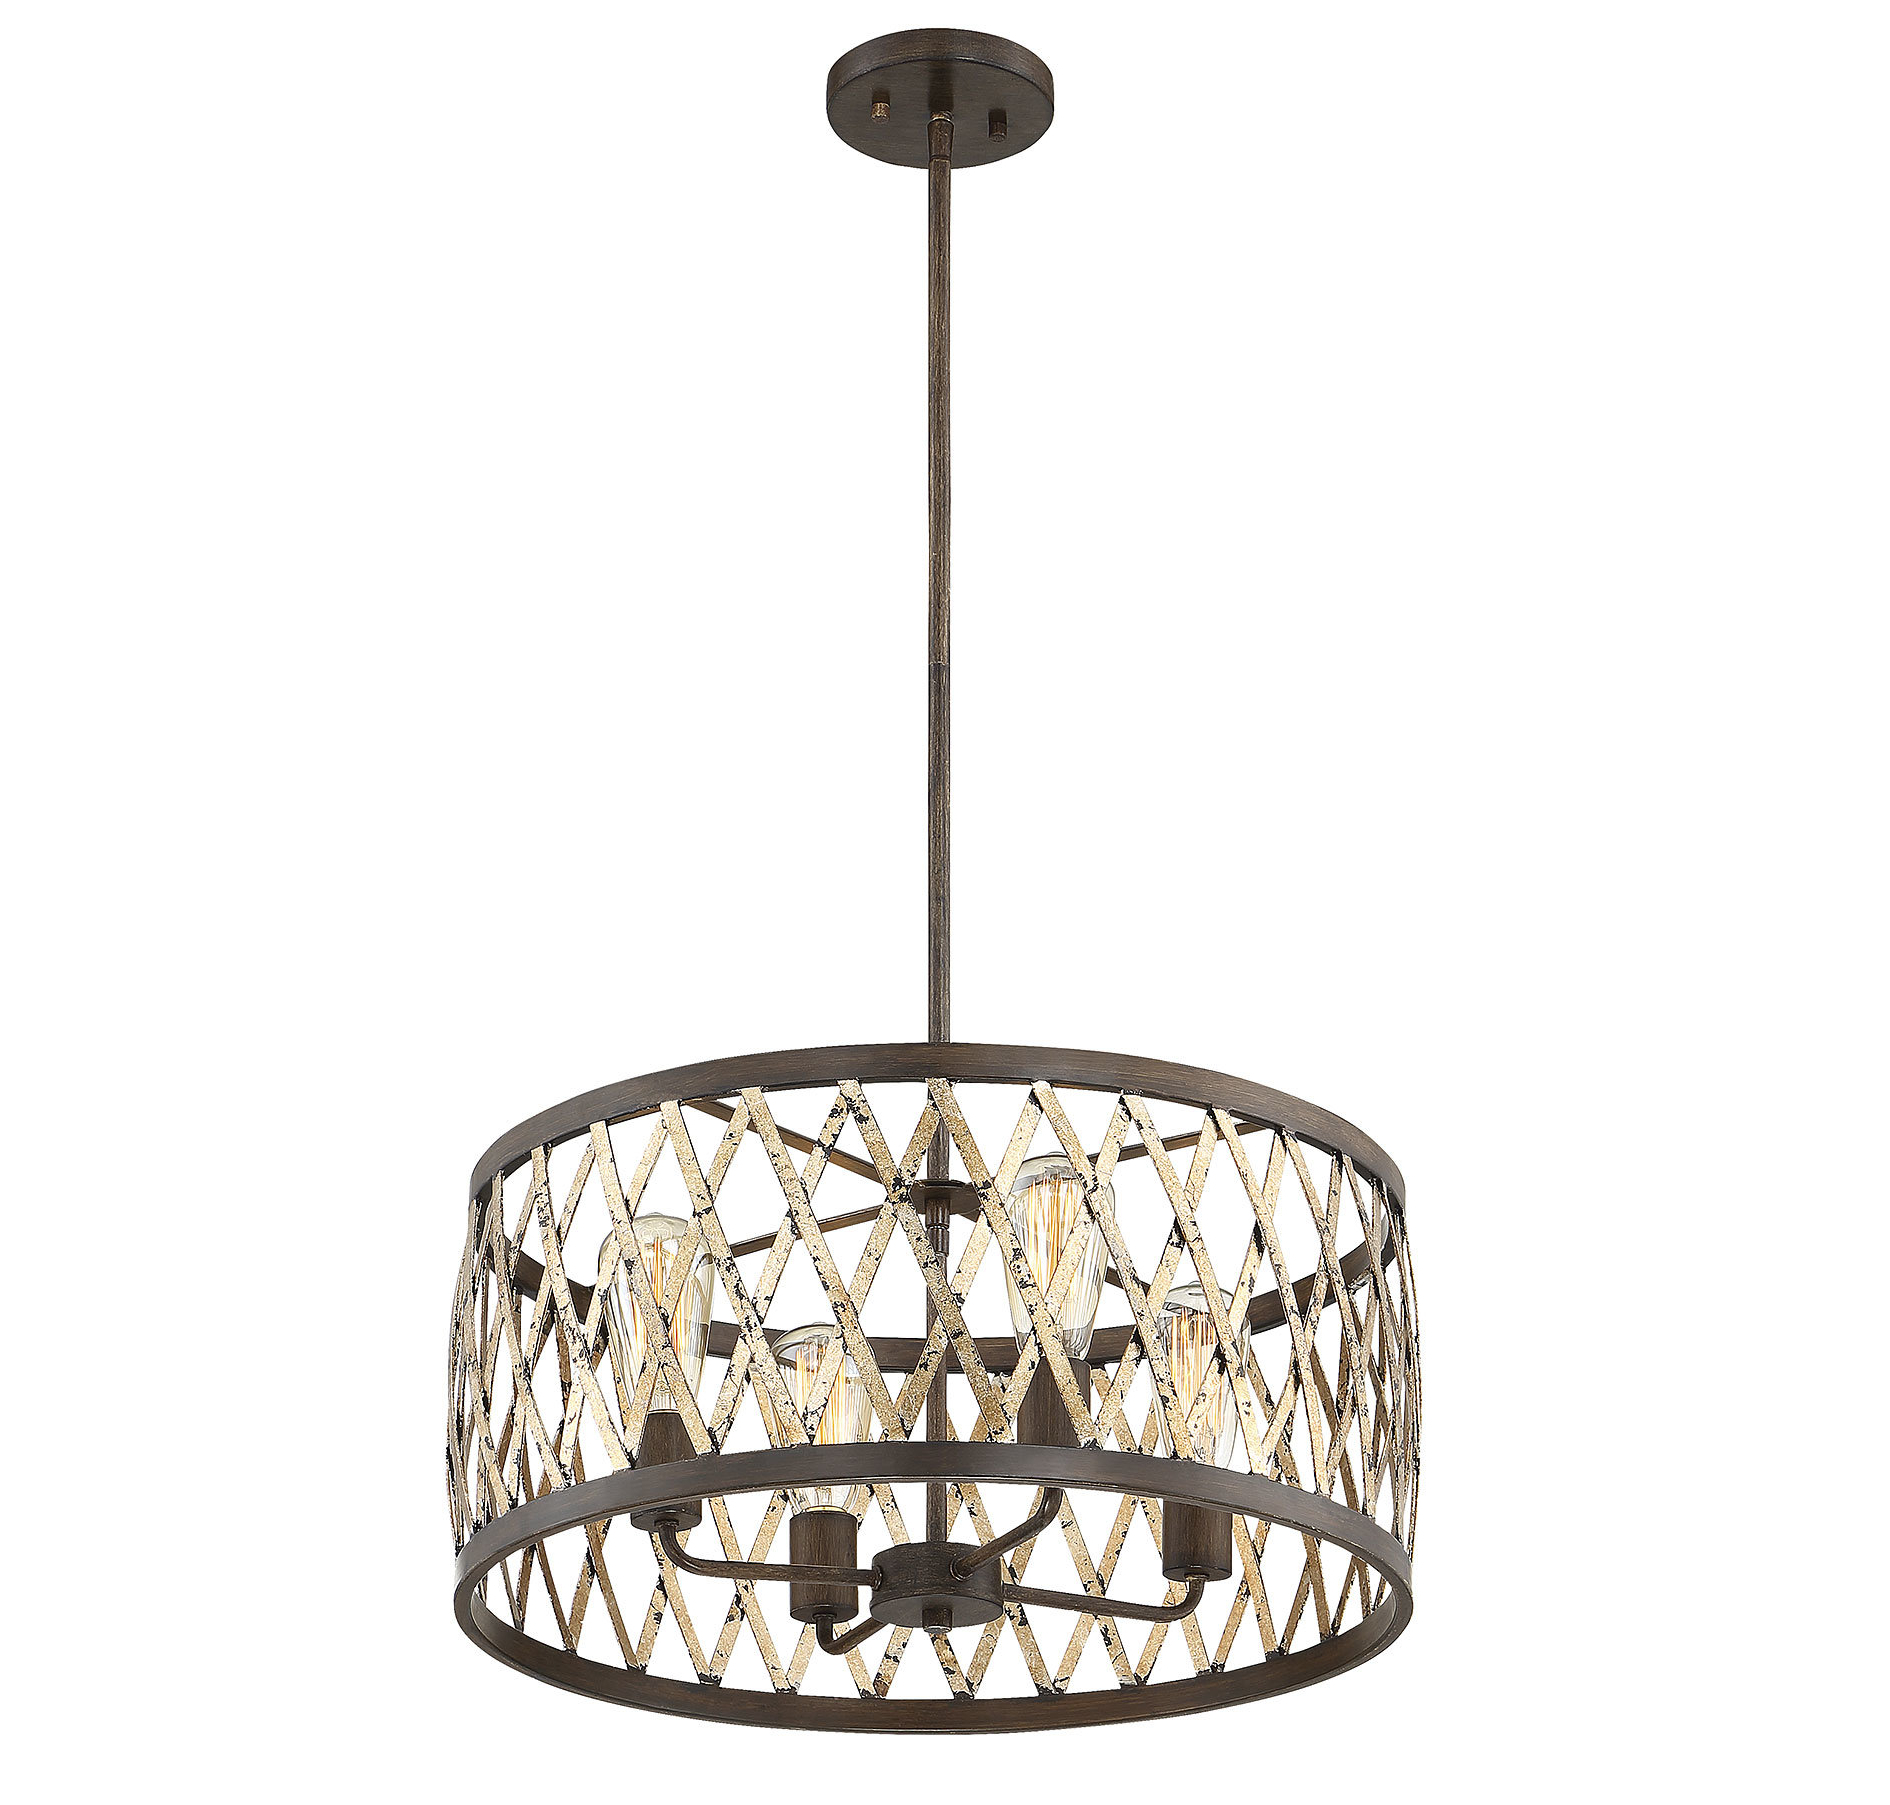 Millwood Pines Anakin 4 Light Drum Chandelier For Latest Vincent 5 Light Drum Chandeliers (Gallery 19 of 20)